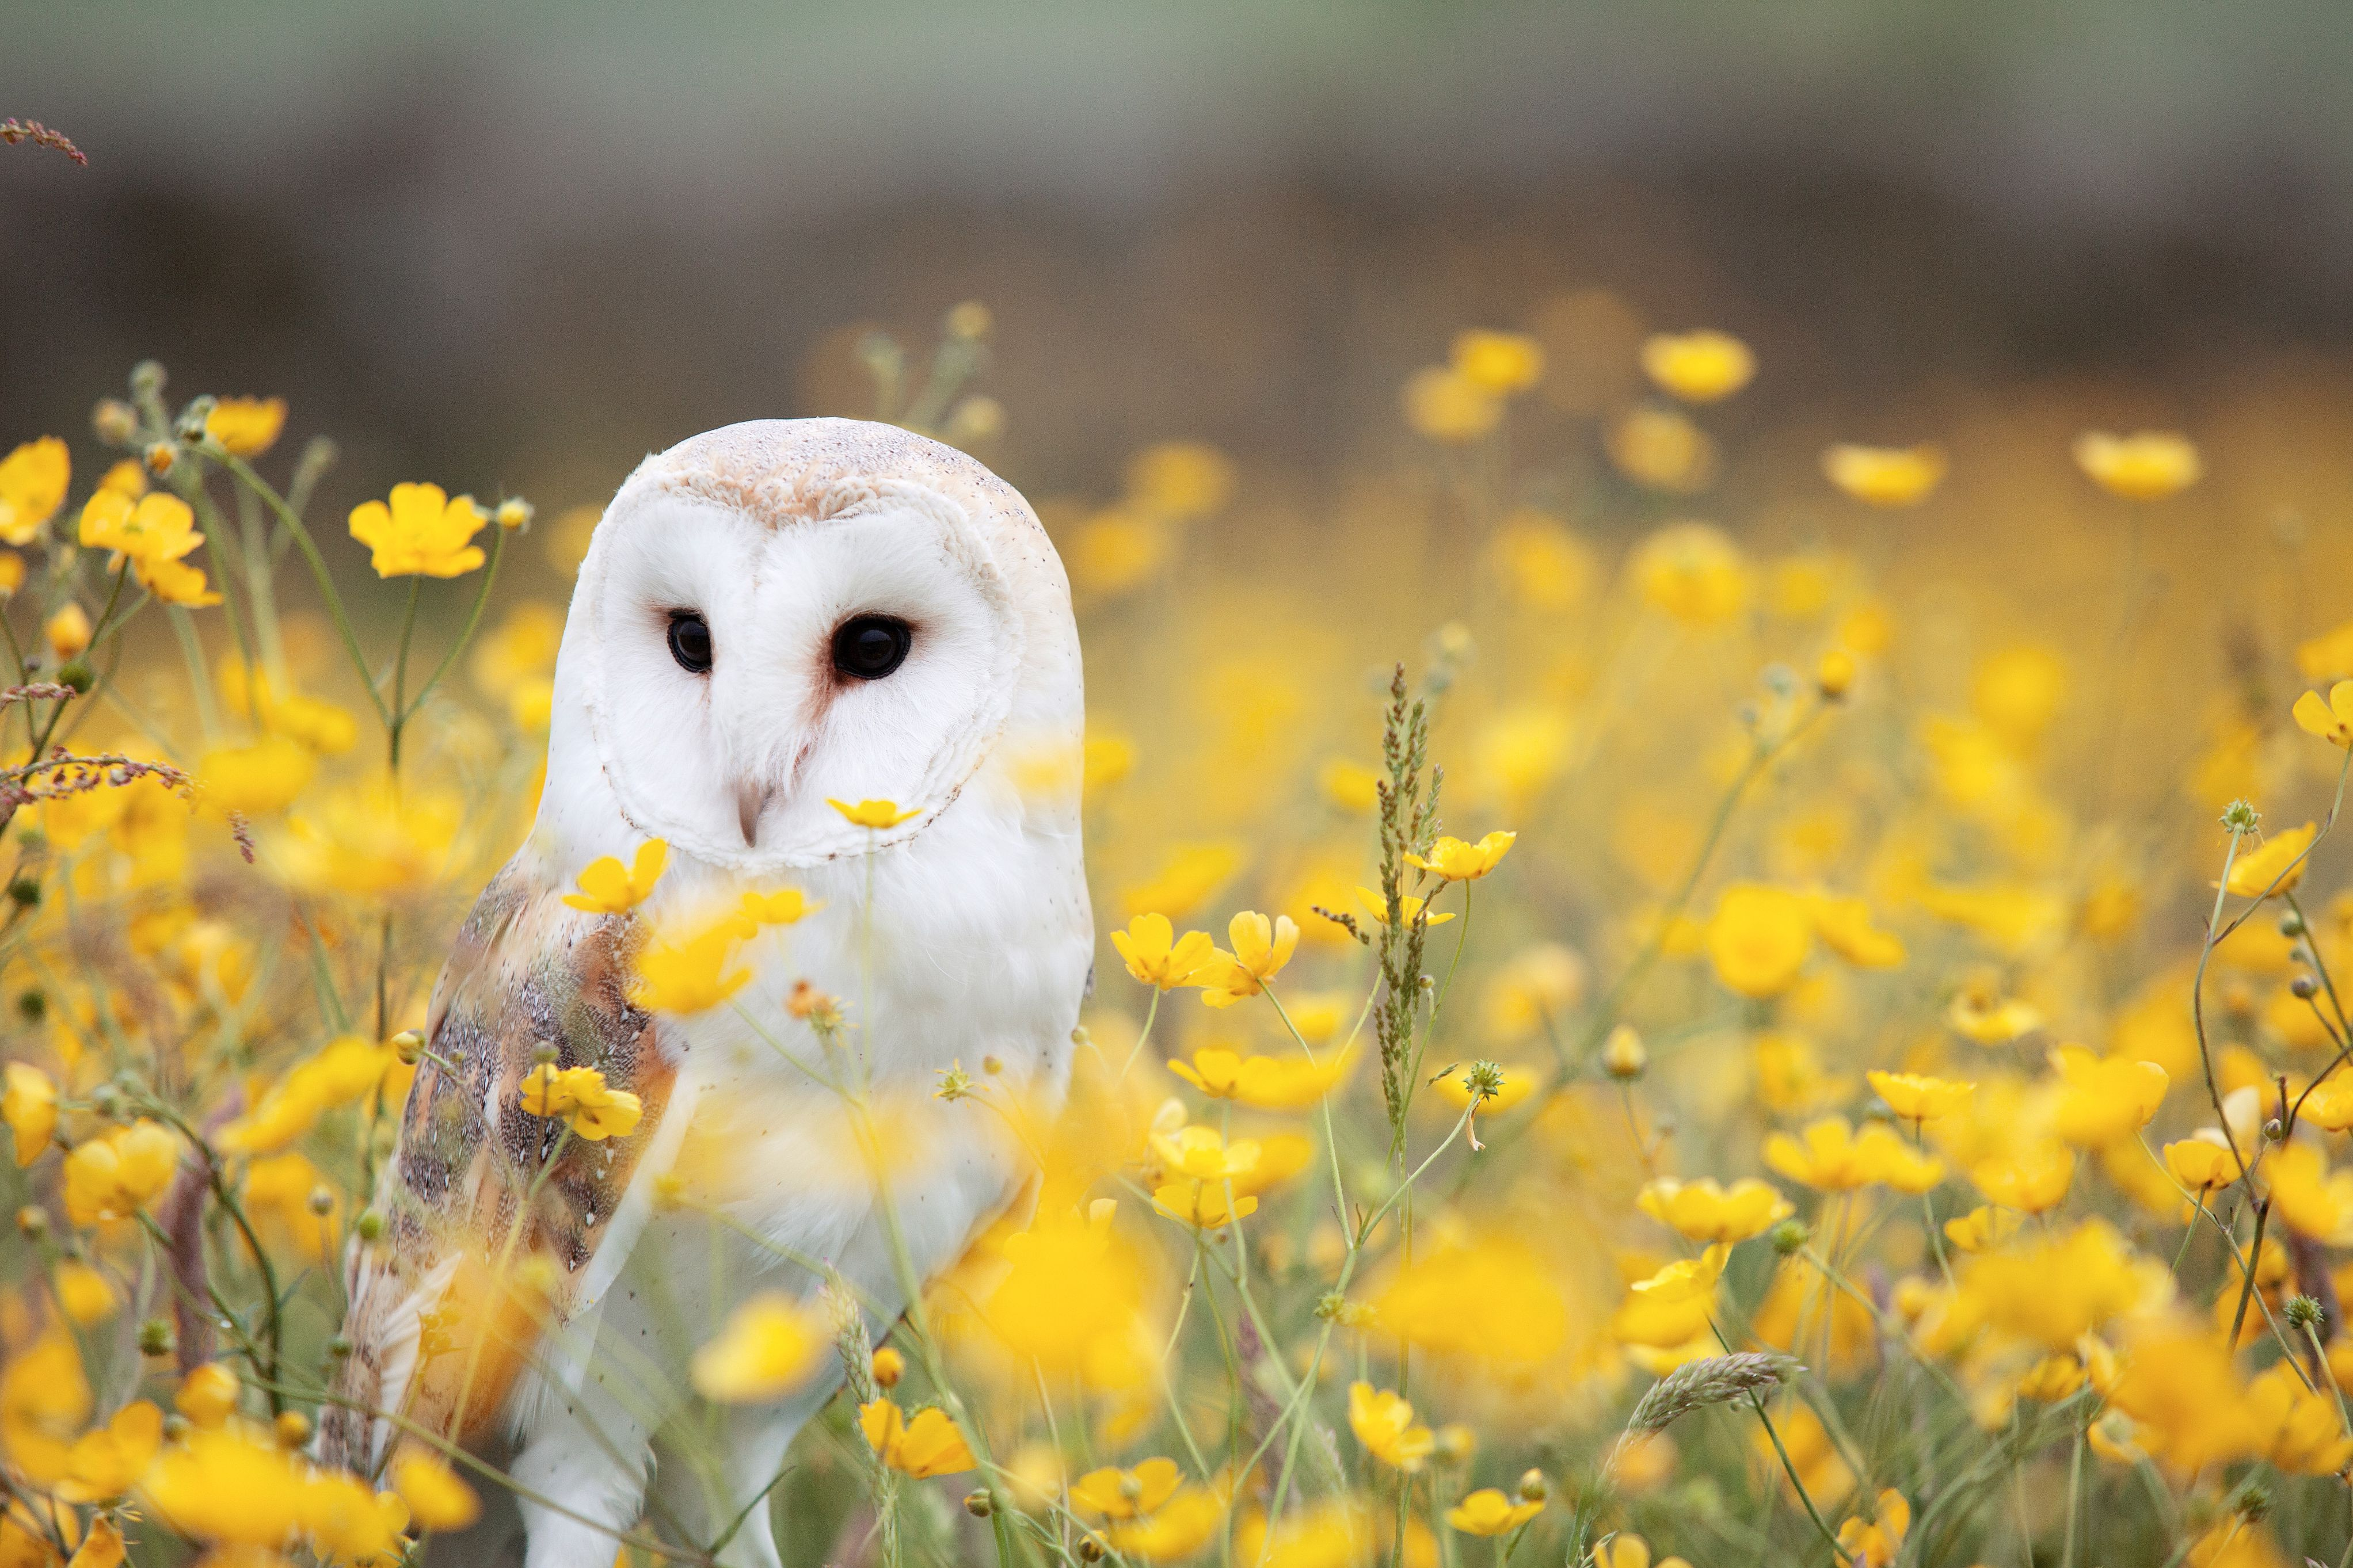 Barn owl (Tyto alba) sitting in field of yellow flowers